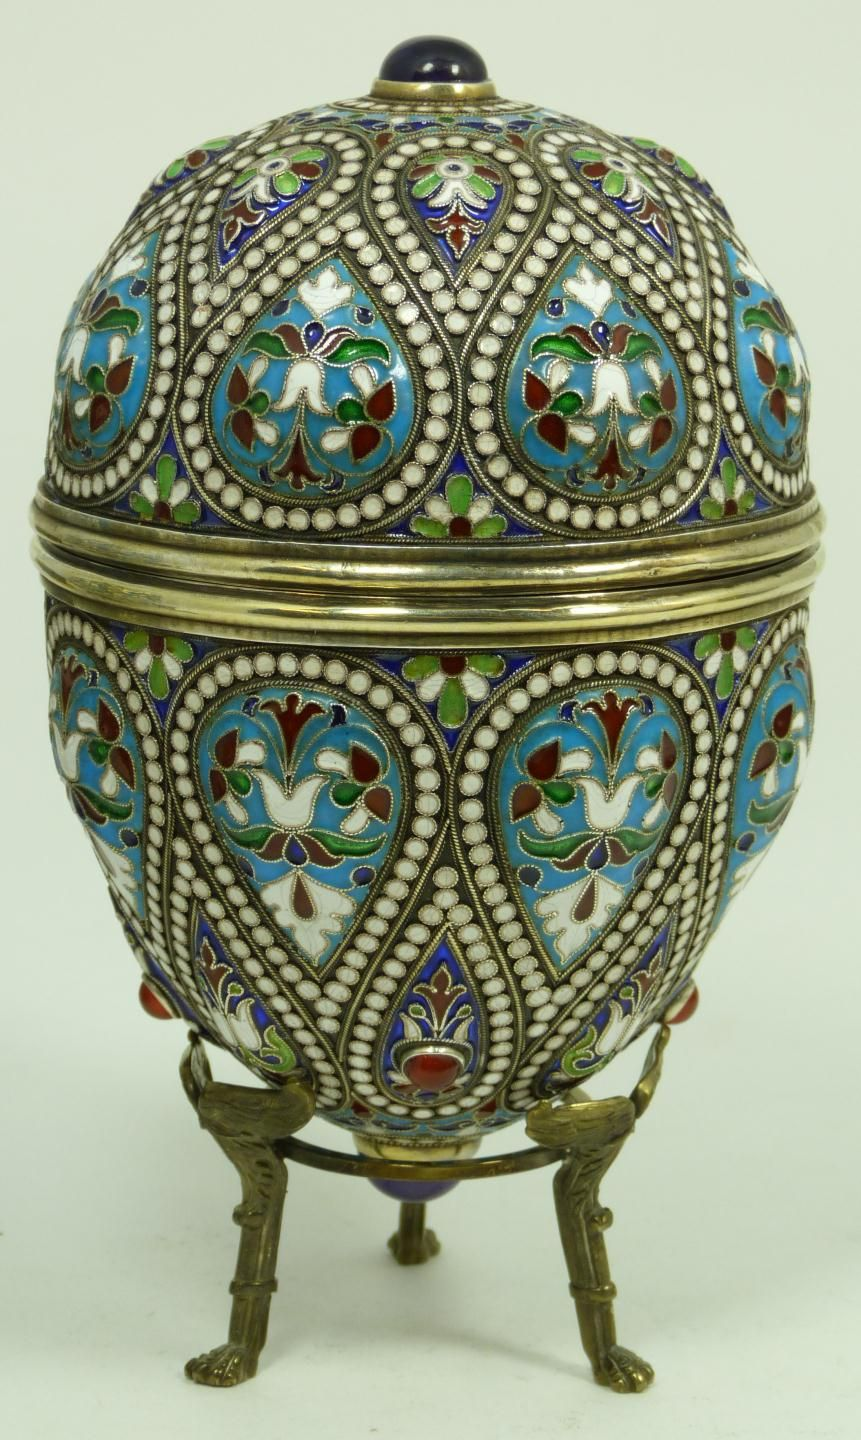 Russian silver egg with multicolor enameled raised tear drop design throughout. Jeweled with round Cabochon amethyst stones on each end.